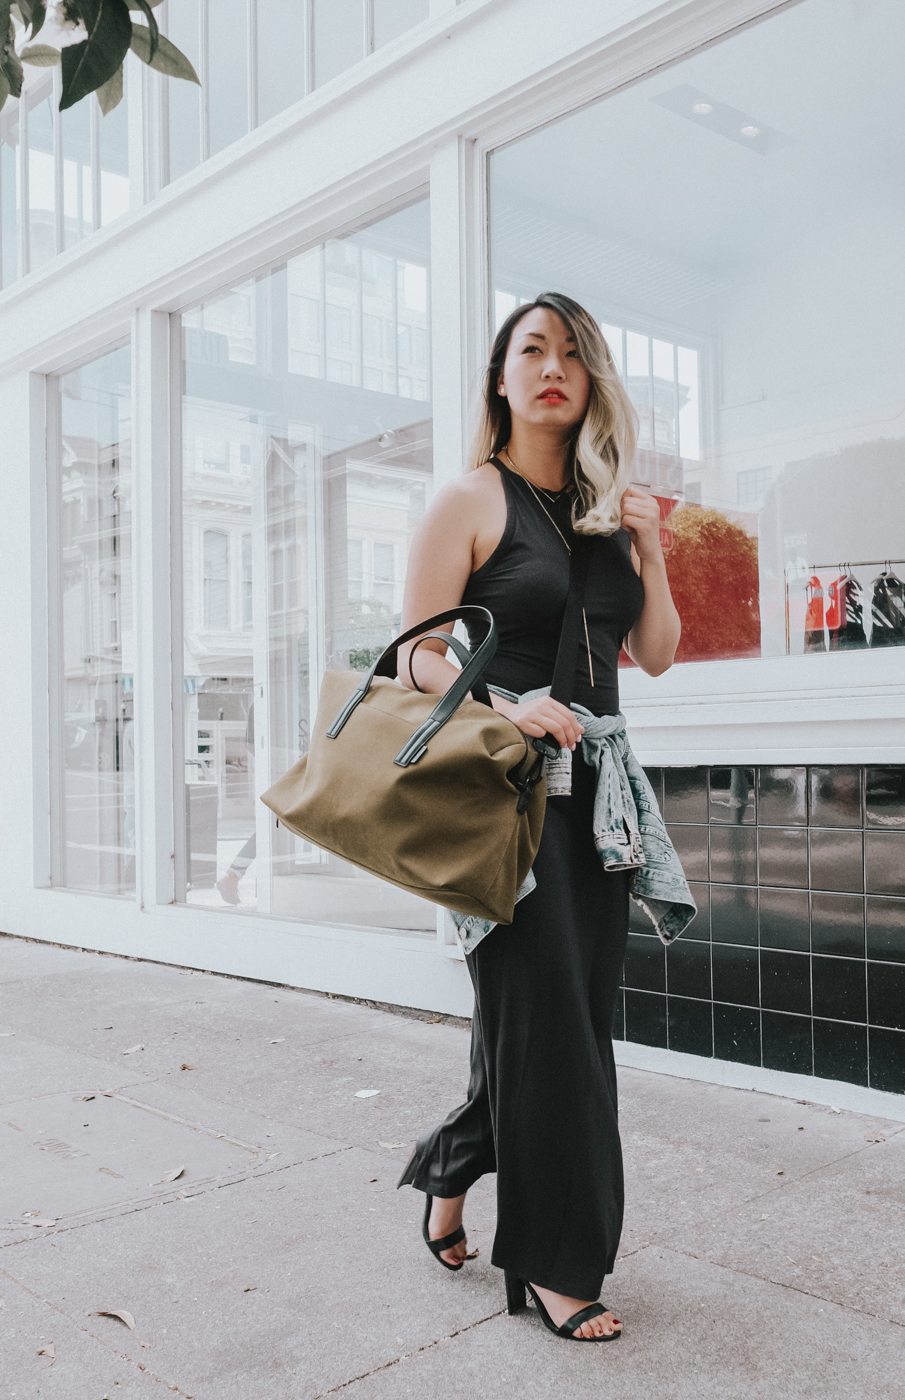 Away Travel - The Everywhere Bag | The Chic Diary